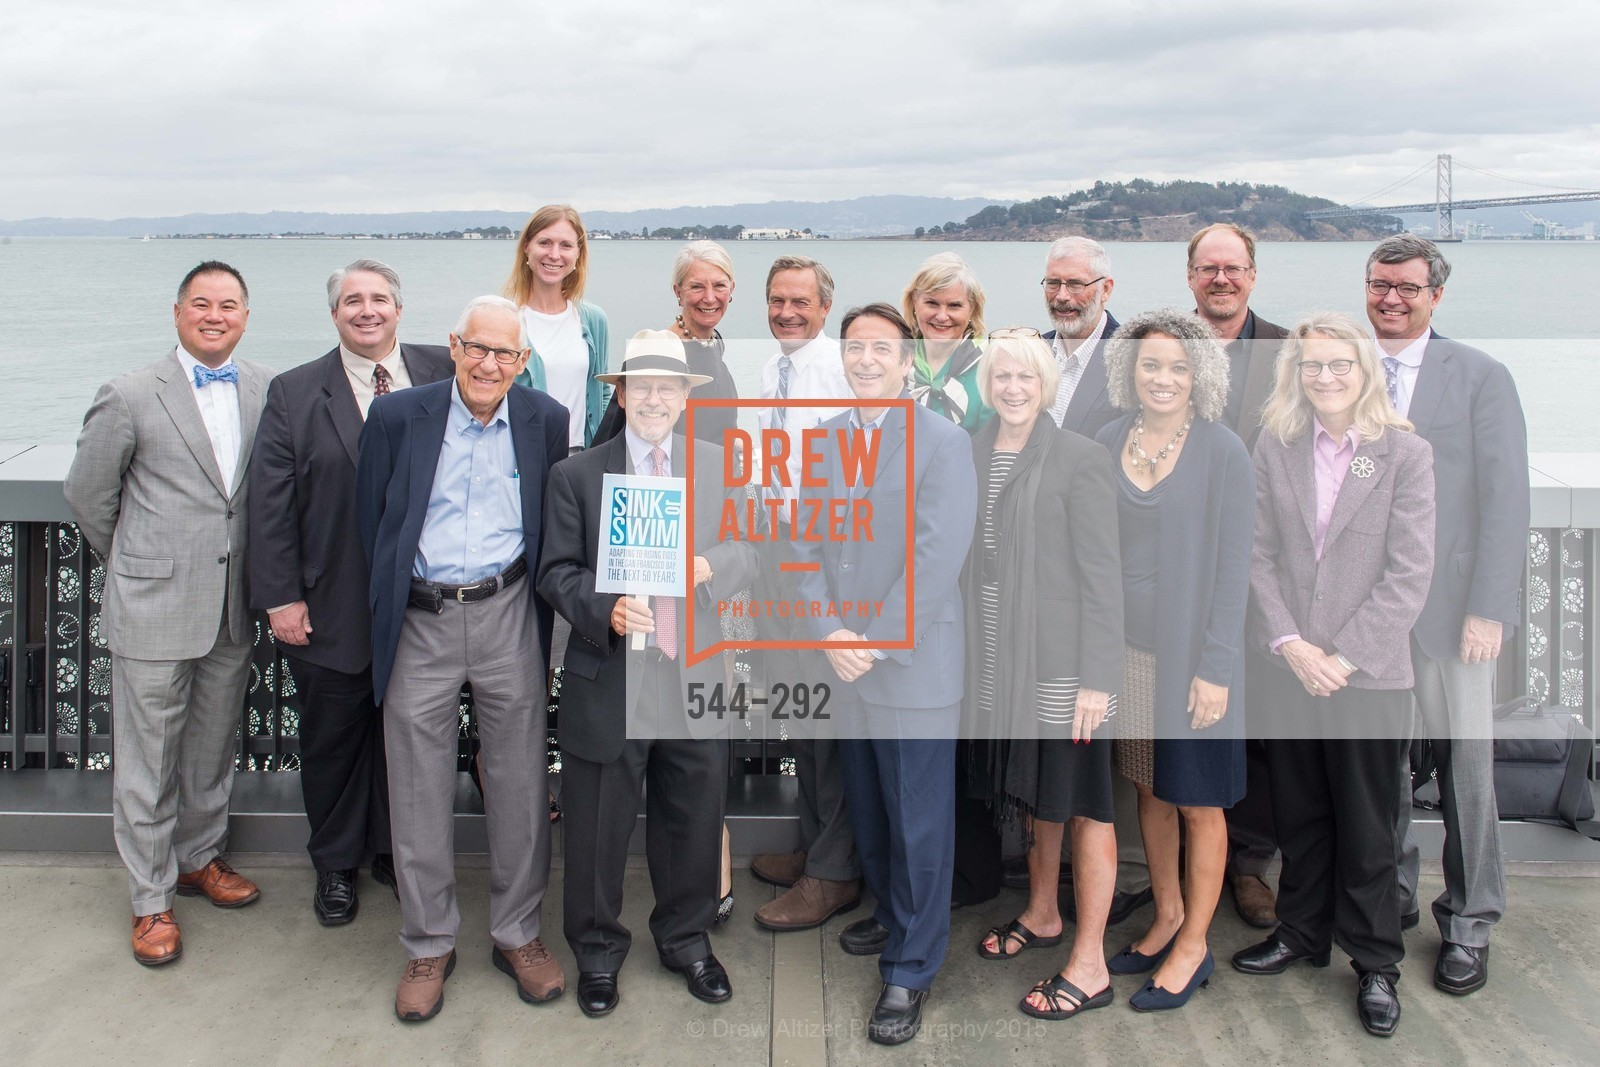 Philip Ting, Joe Bodovitz, Greg Wasserman, Anne Halsted, Jim McGrath, Marie Gilmore, Barry Nelson, Kate Sears, Rising Tides at the Exploratorium, The Exploratorium. Pier 15, The Embarcadero, September 16th, 2015,Drew Altizer, Drew Altizer Photography, full-service agency, private events, San Francisco photographer, photographer california